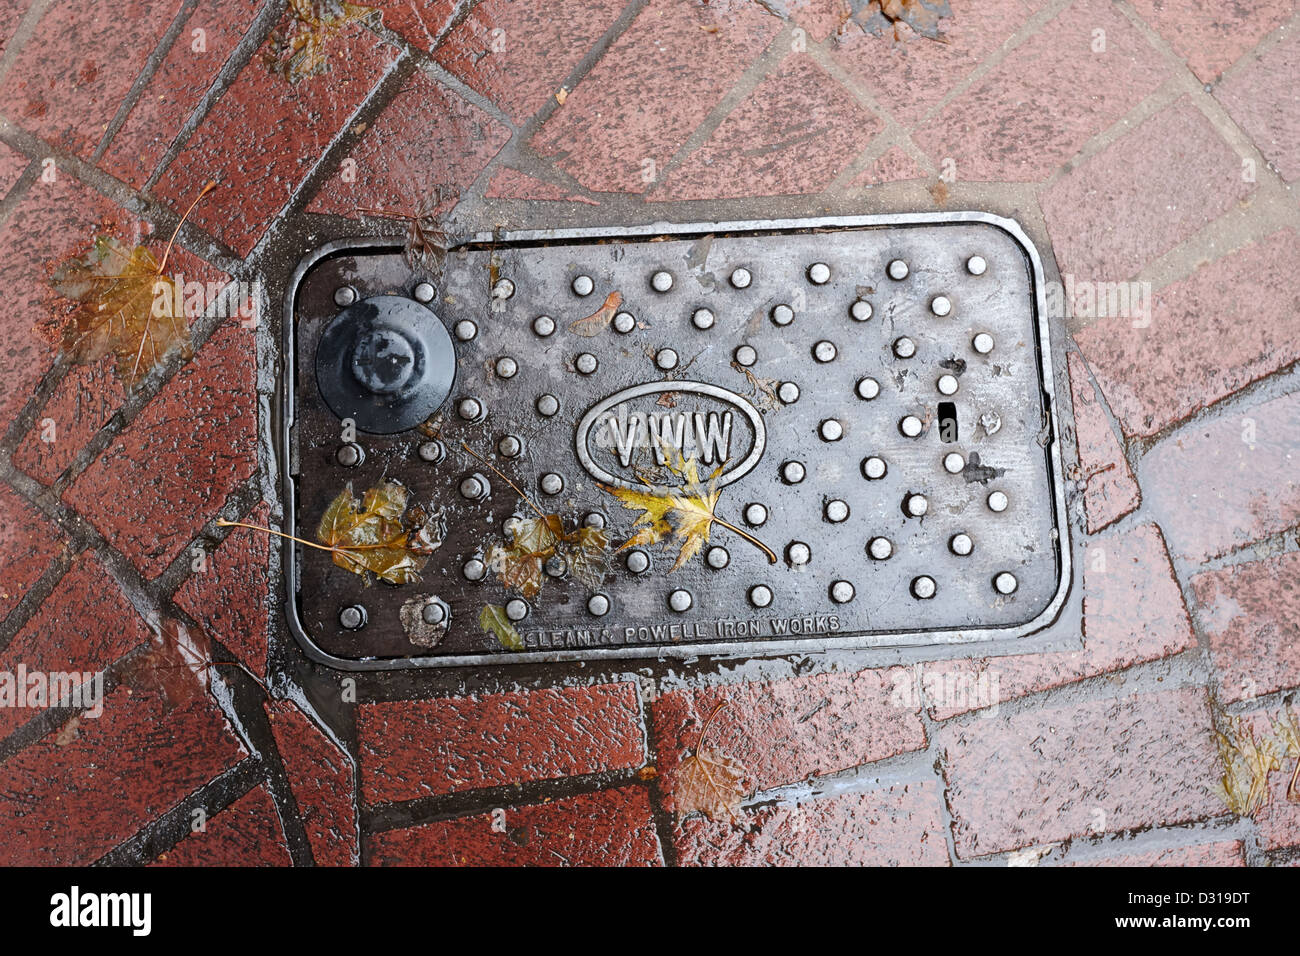 Vancouver water works street drainage access plate made by mclean and powell iron works BC Canada - Stock Image